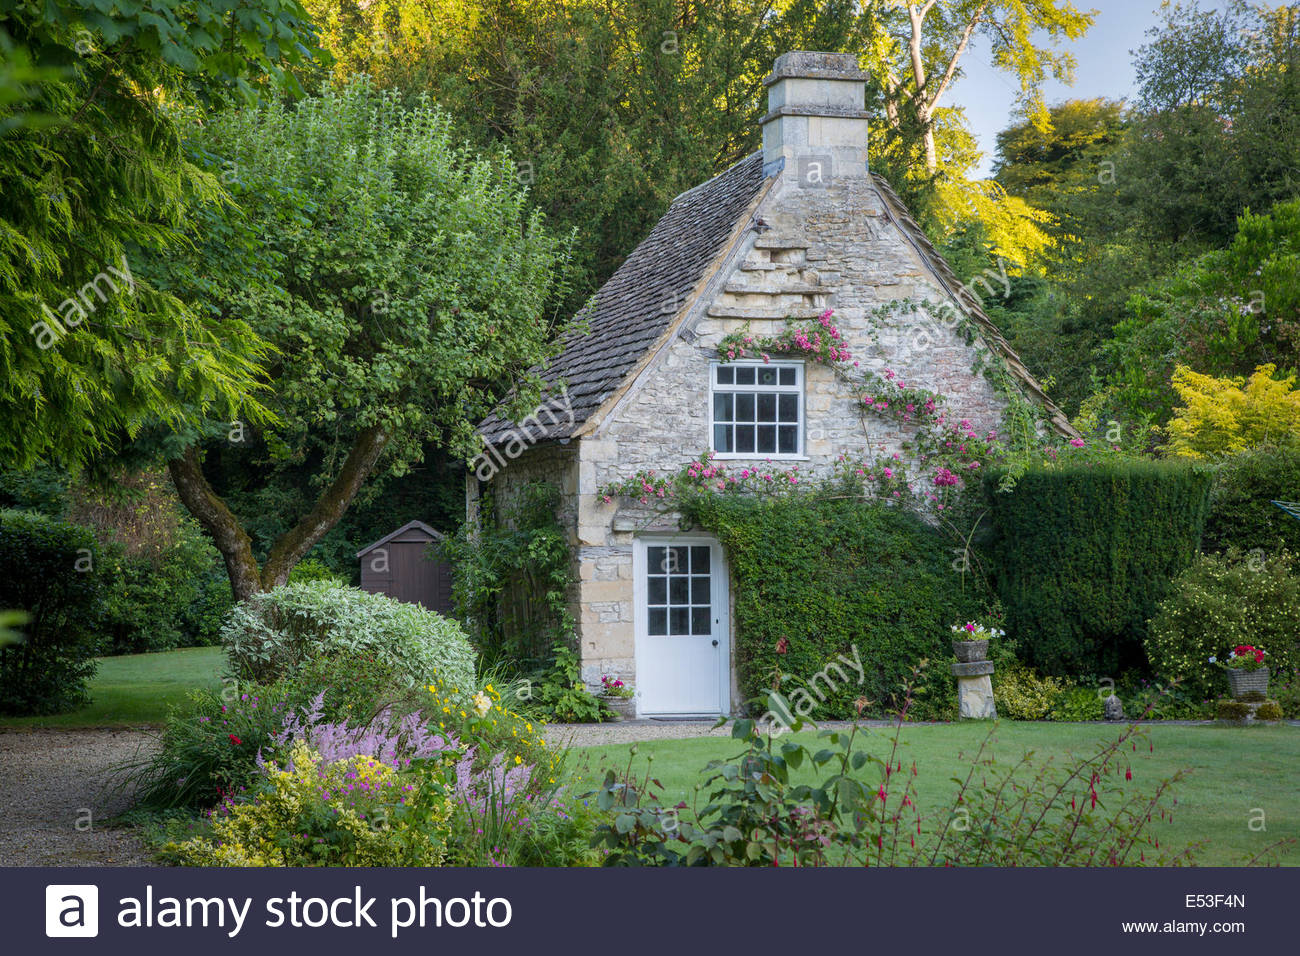 Early morning cottage in Castle Combe, Wiltshire, England - Stock Image